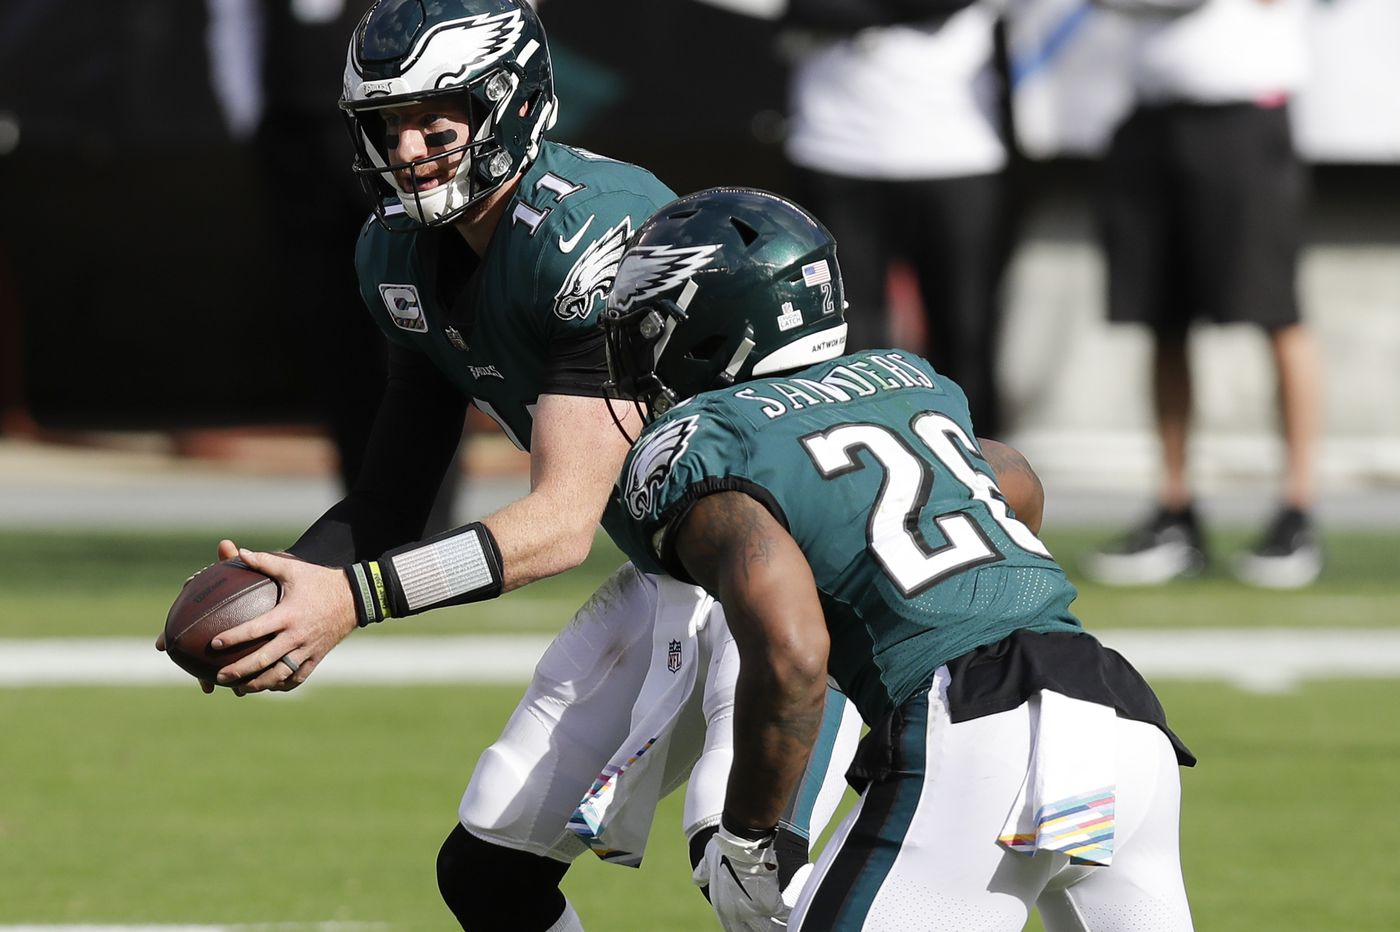 Eagles offense is getting closer to full strength with Miles Sanders, Lane Johnson, and Alshon Jeffery set to return